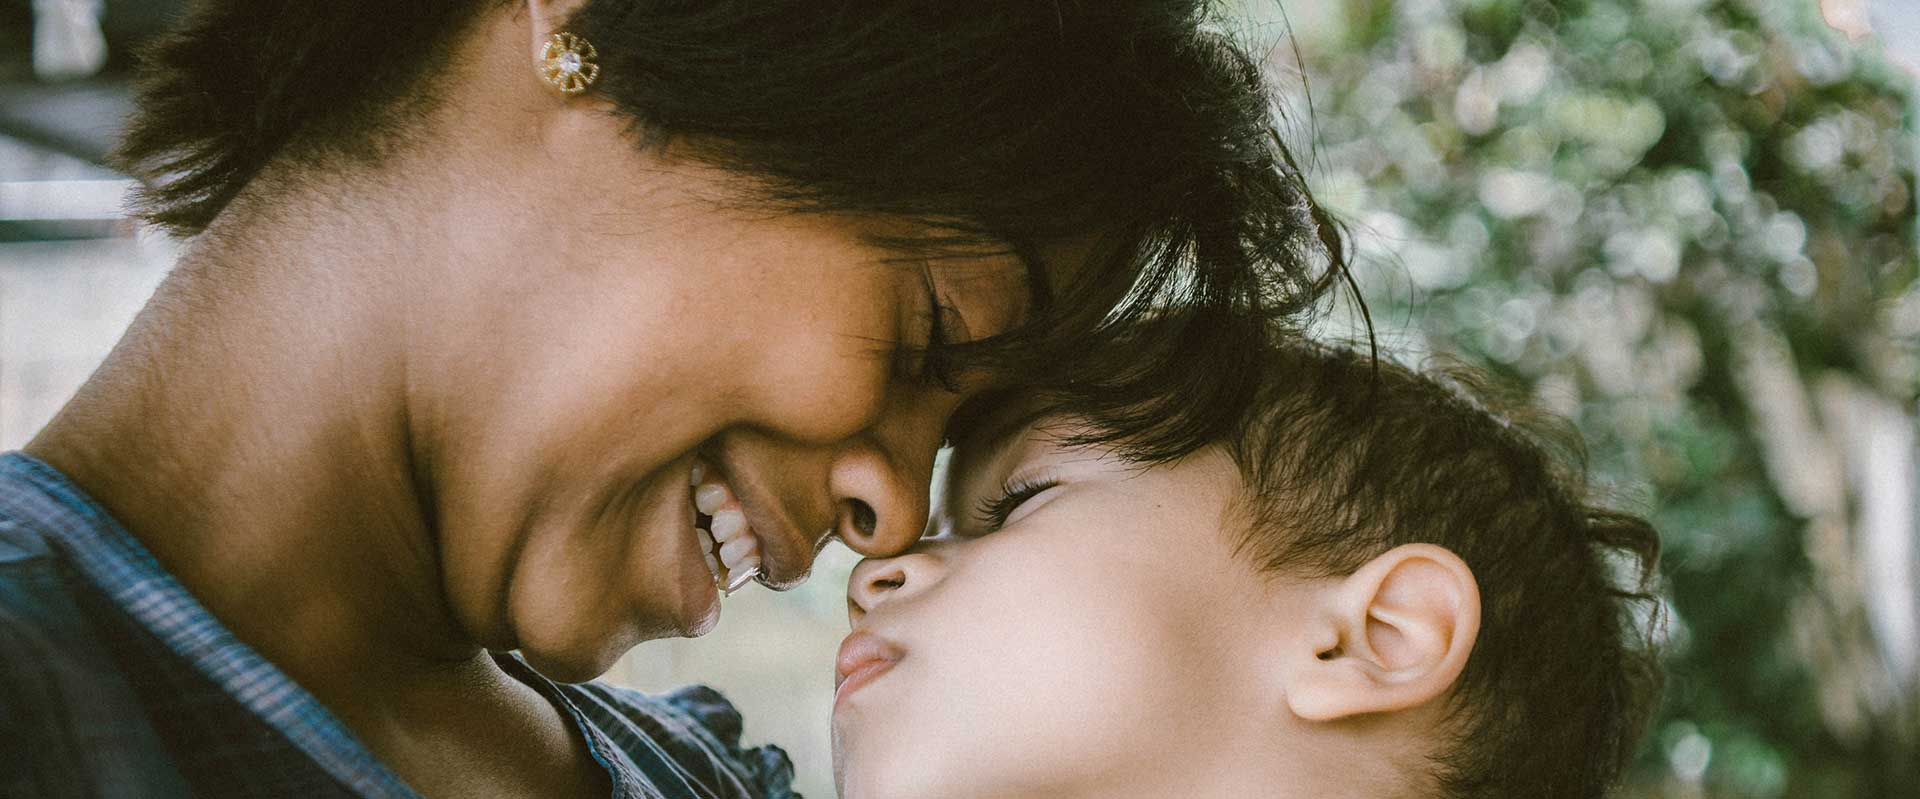 woman smiling and leaning in with her forehead rested on childs forehead